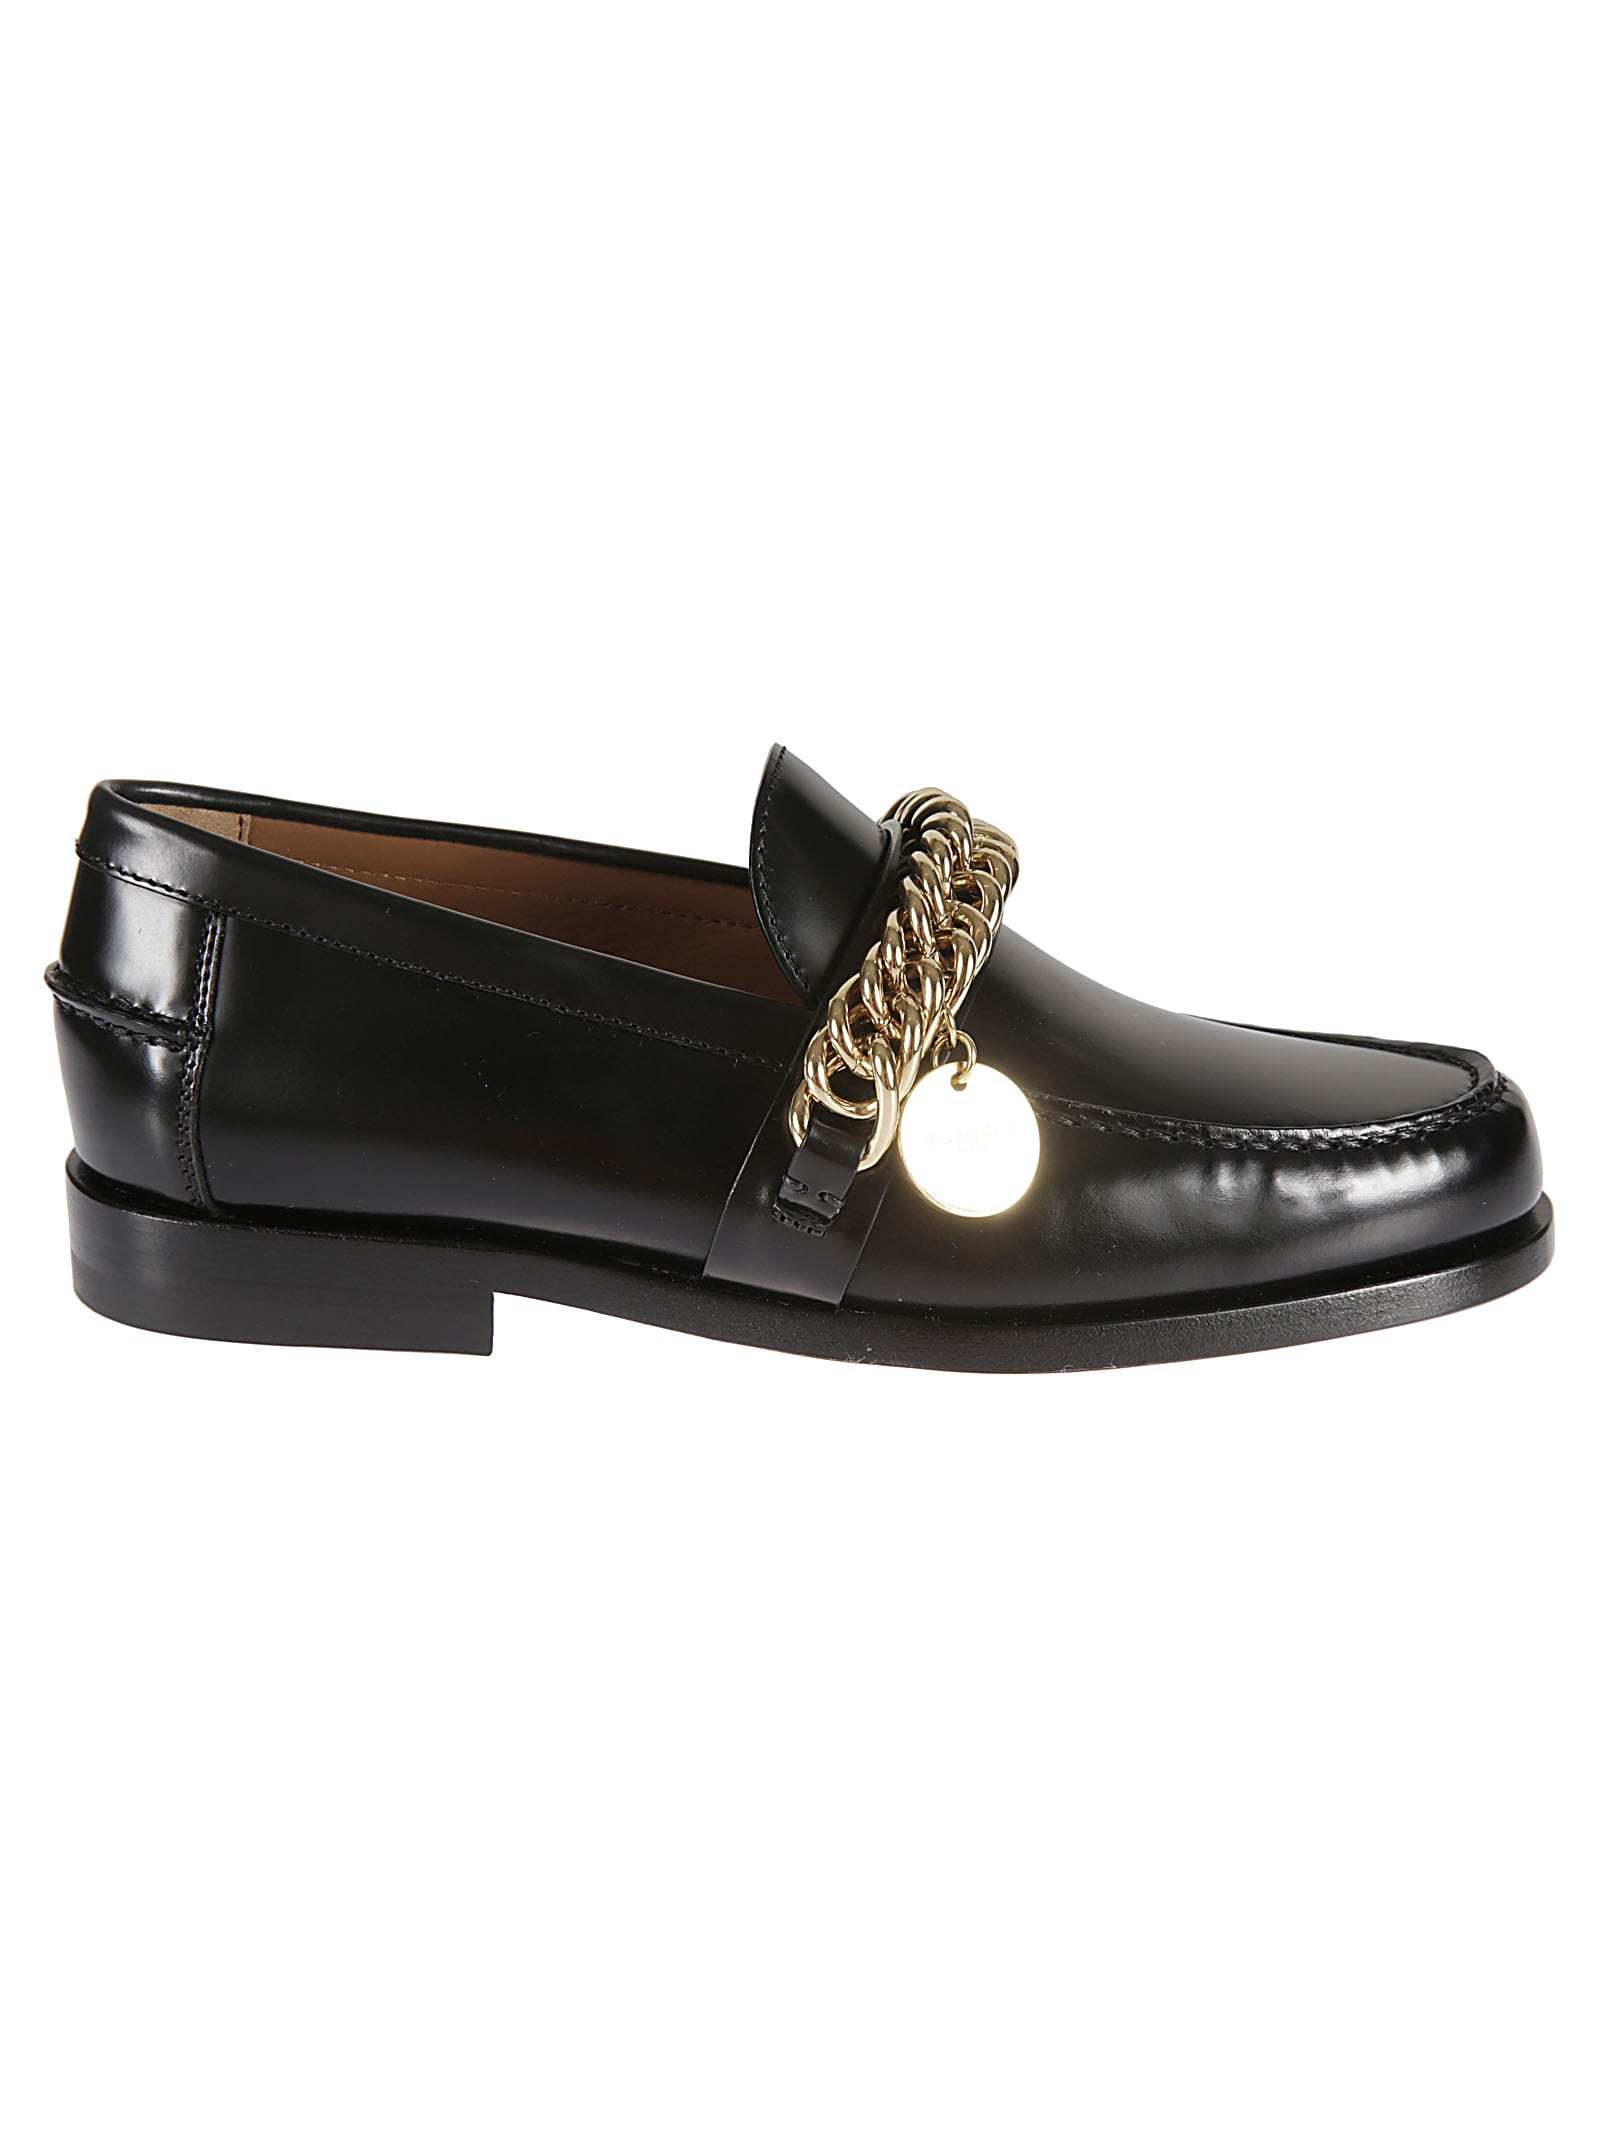 Buy Givenchy Chain Loafers online, shop Givenchy shoes with free shipping